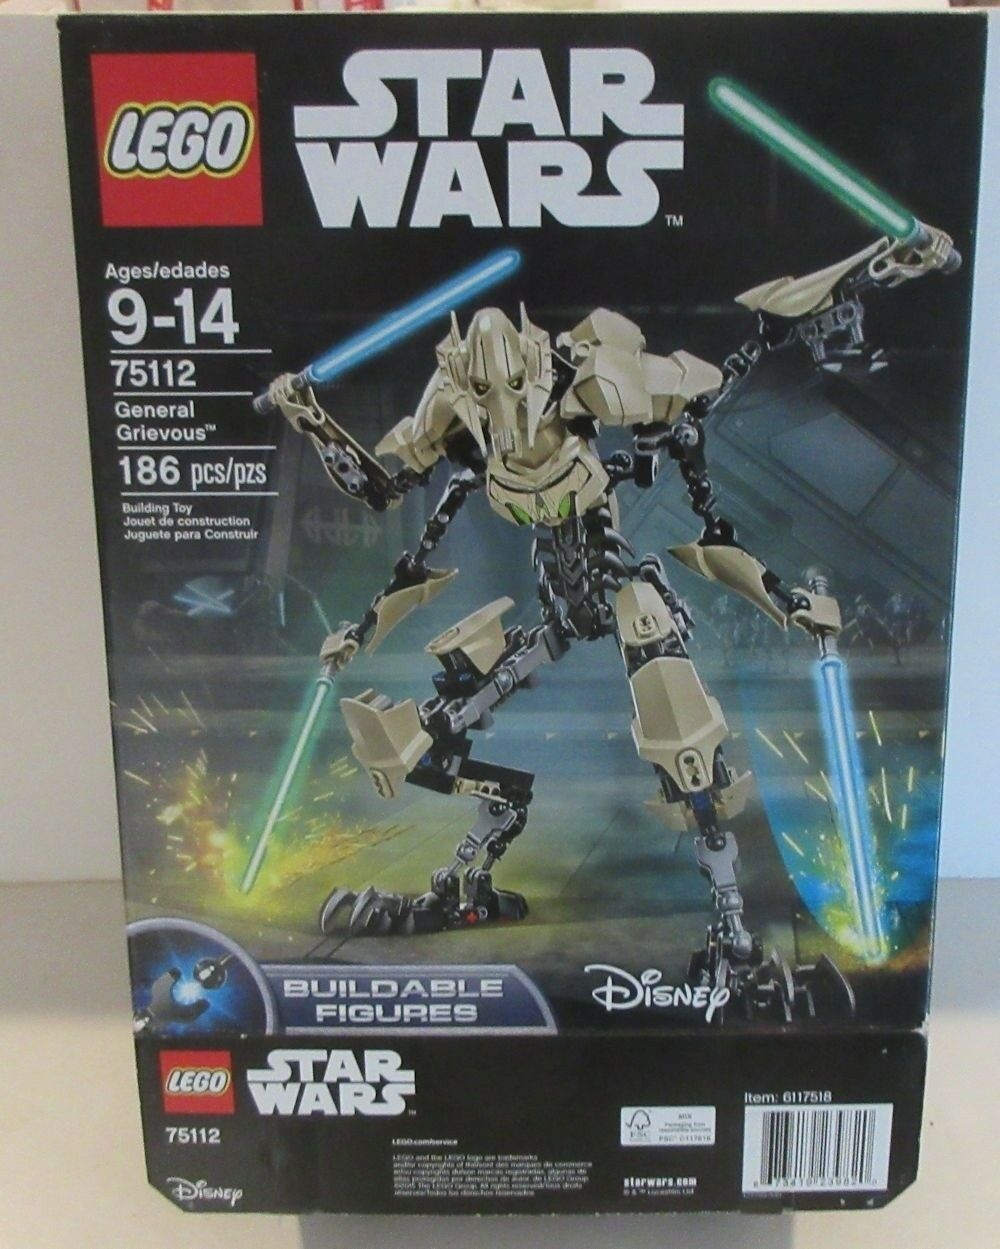 LEGO 75112 STAR WARS General Grievous - Used